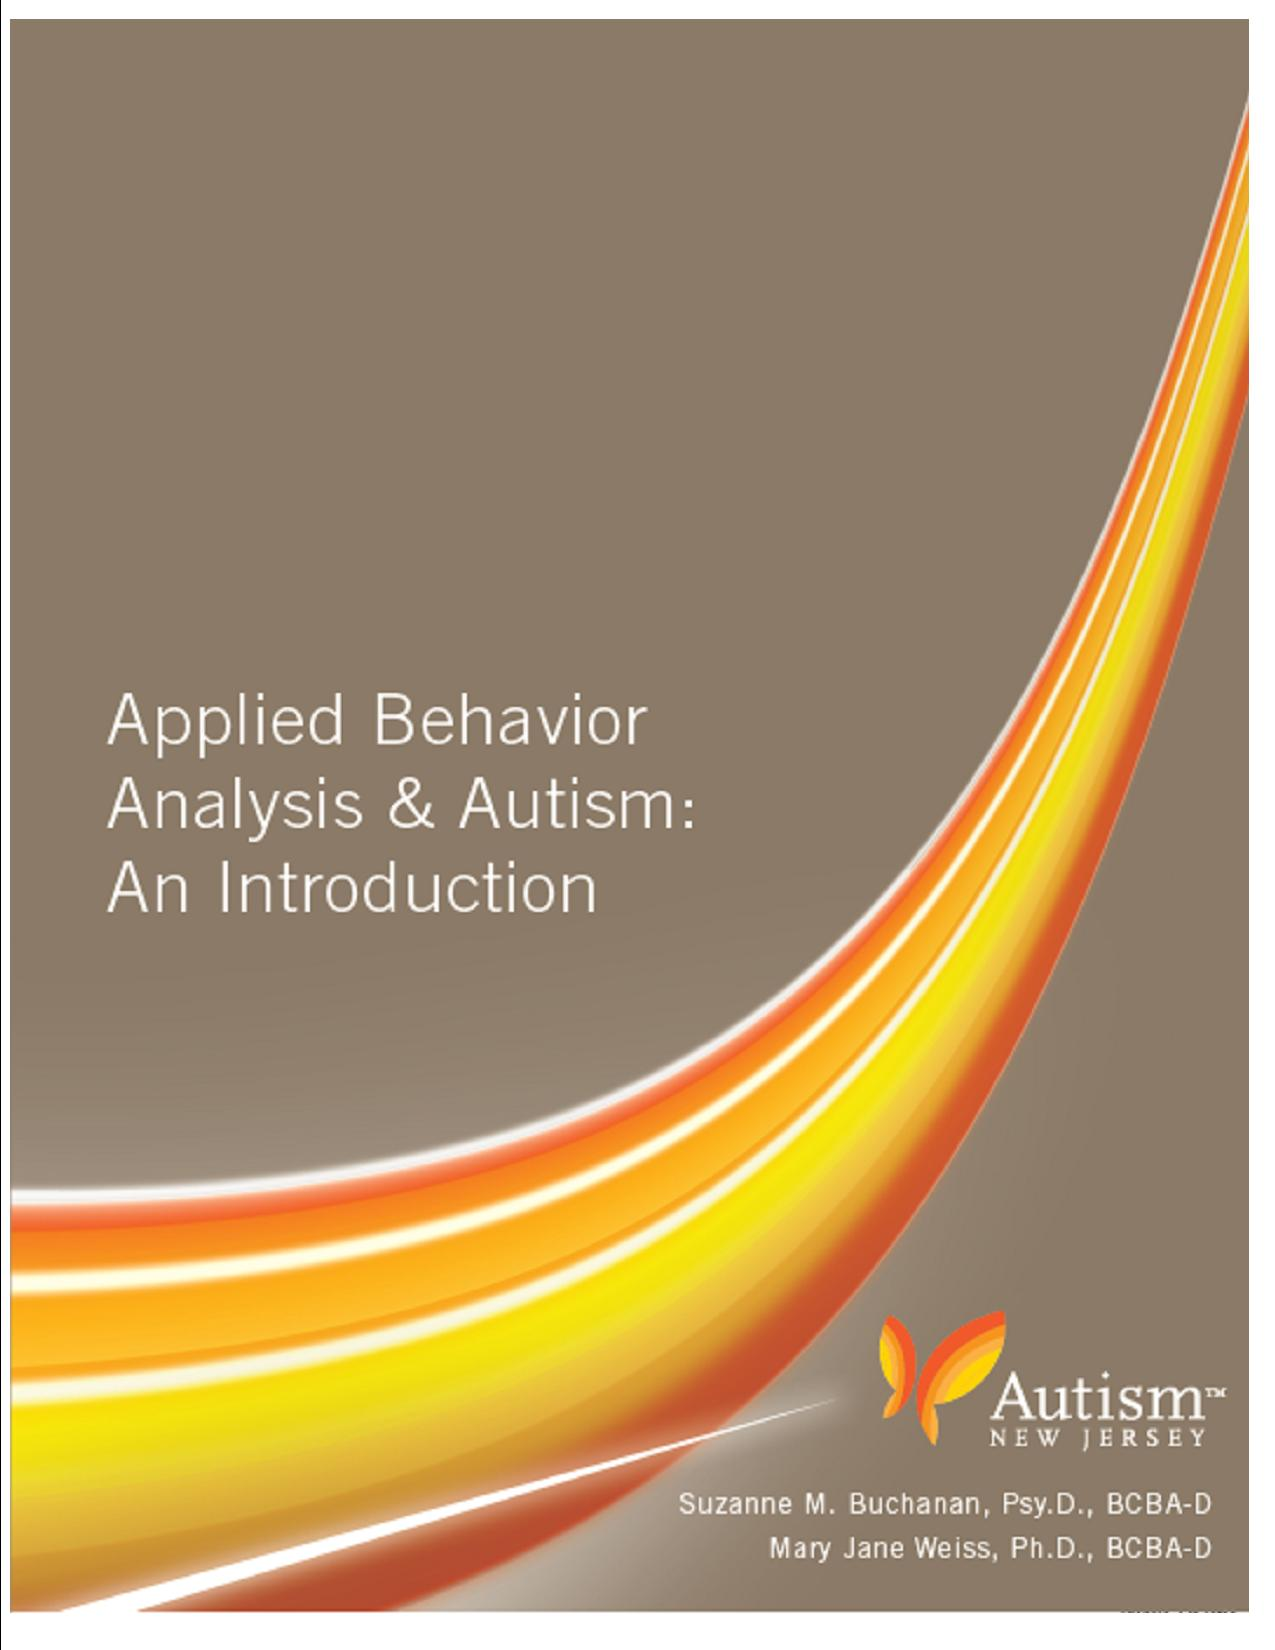 Applied Behavior Analysis: An Introduction